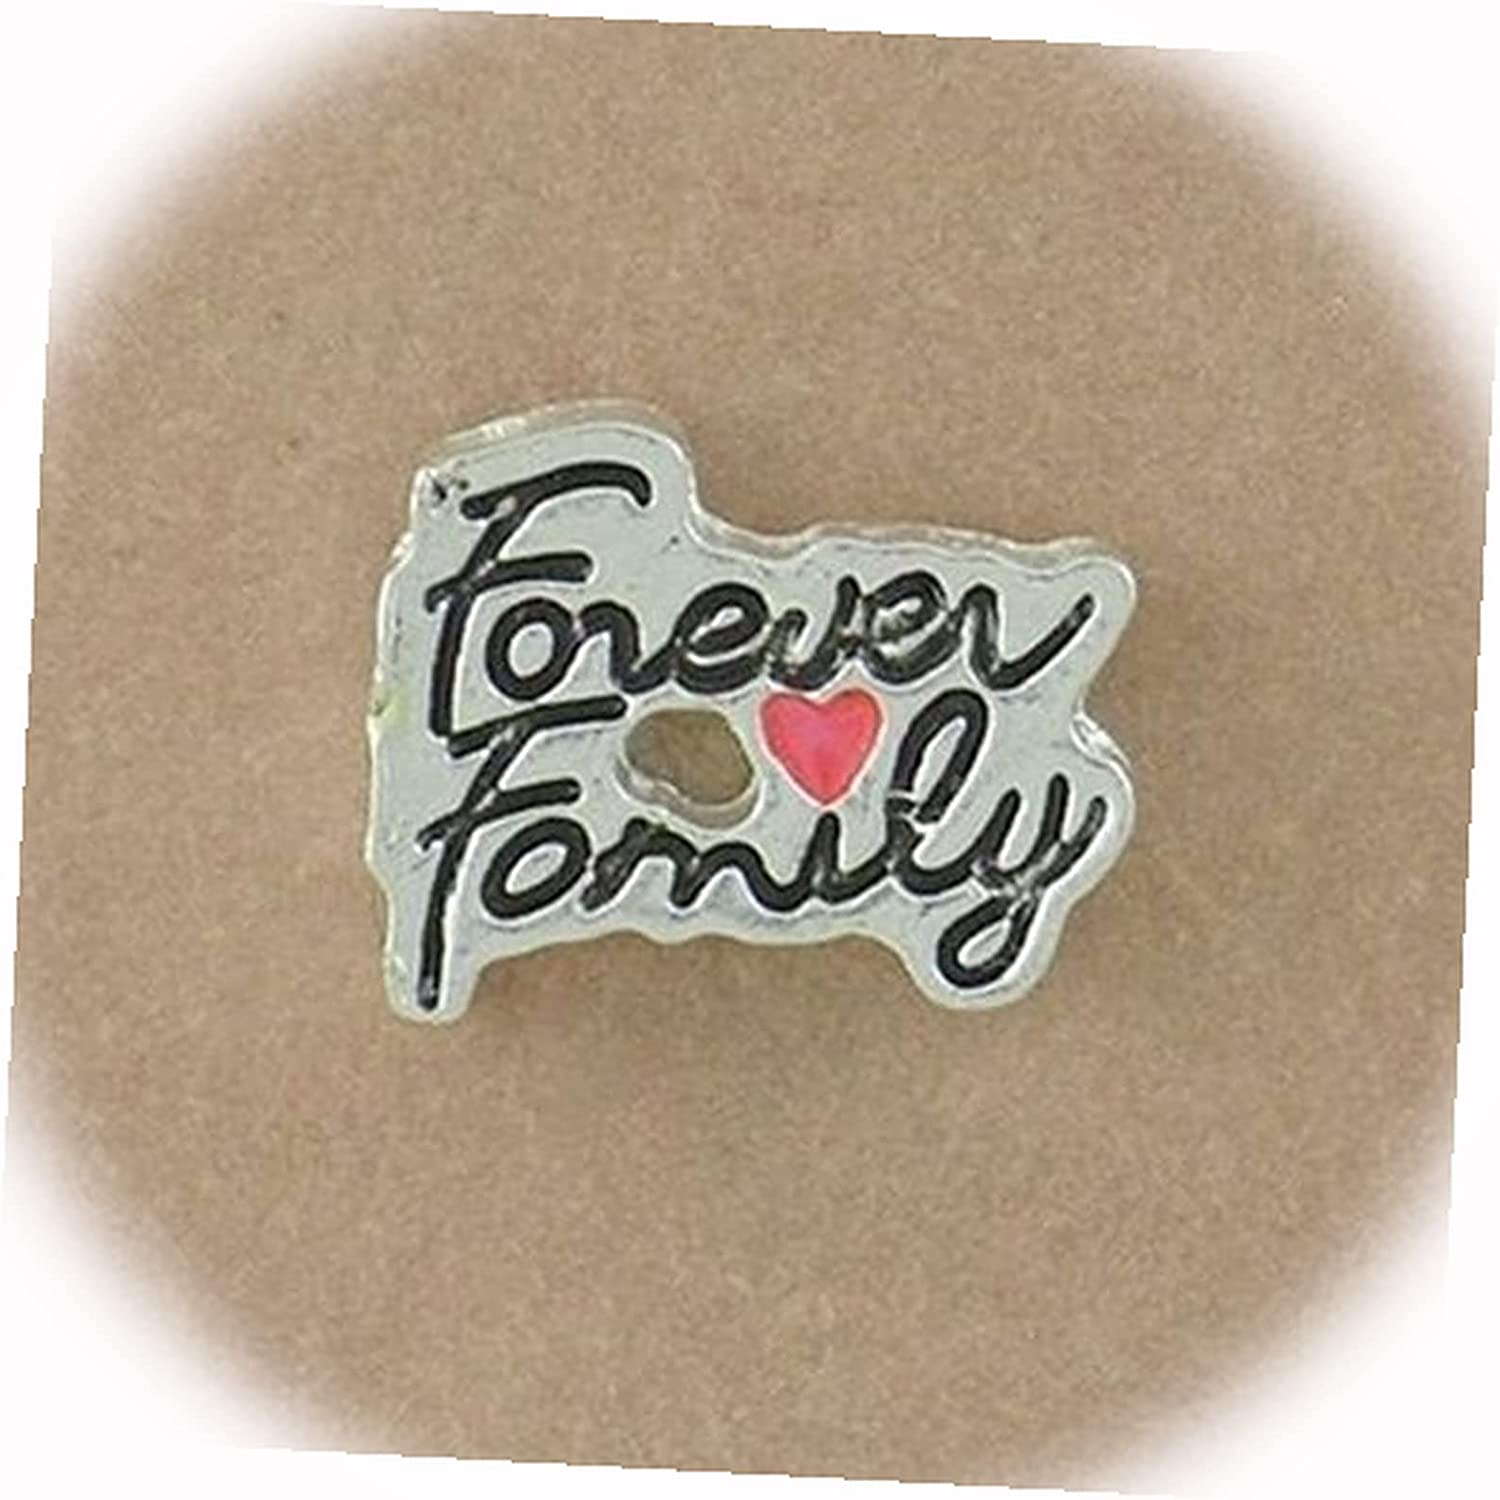 New Forever 5% OFF Max 79% OFF Family with Heart Silver Charm 9mm for Floating Memo